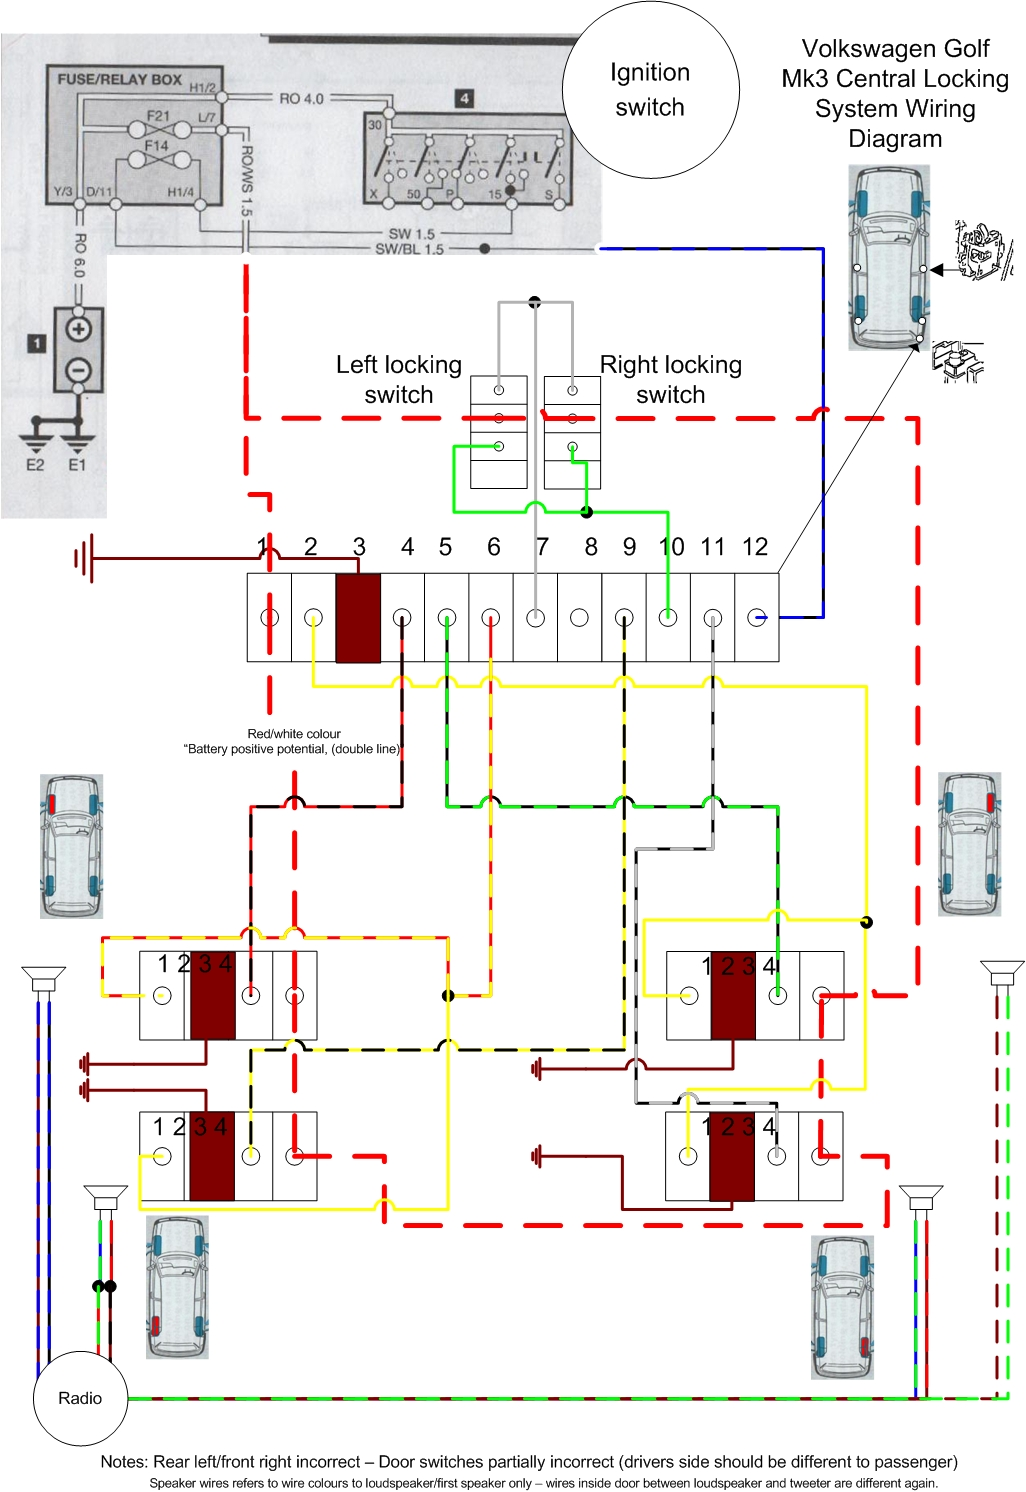 Derby Car Wiring Diagram Just Another Blog 2003 Ski Doo Schematic Library Rh 1 Codingcommunity De Auto Electrical Diagrams For Cars